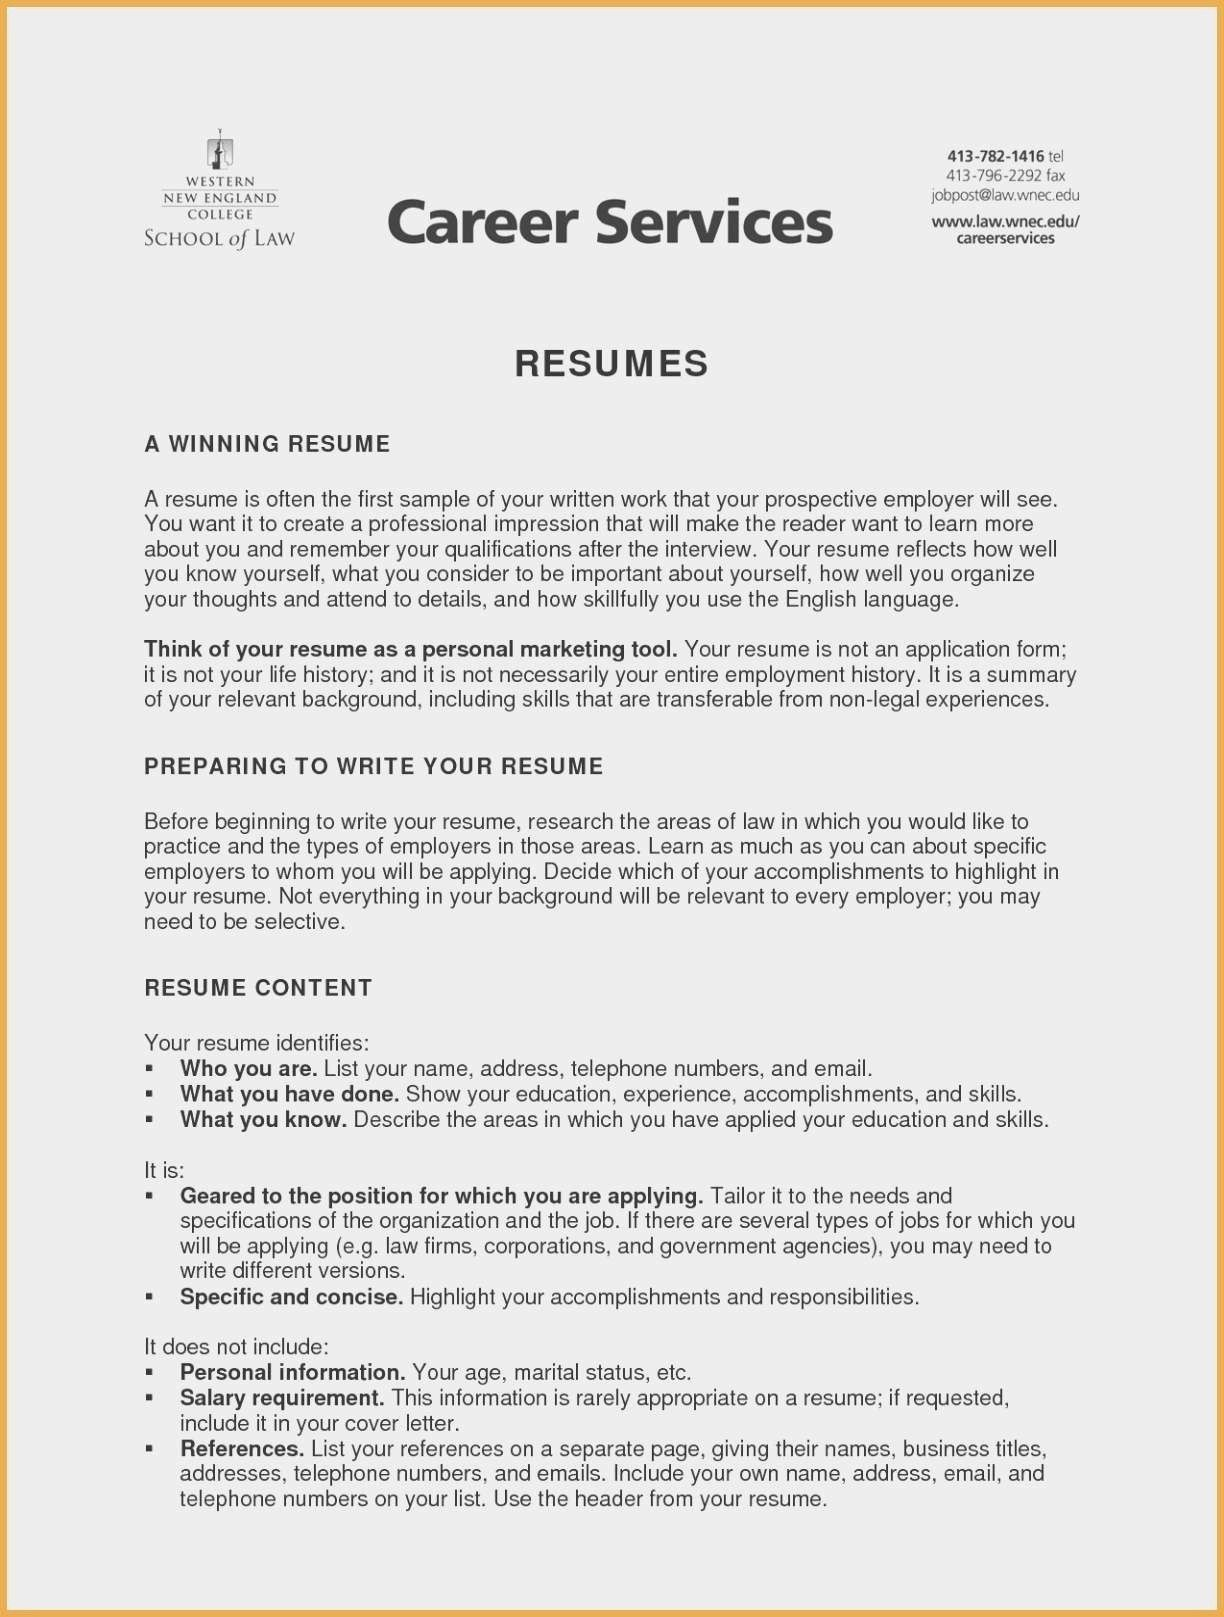 Best Of Government Job Offer Letter With Images College Resume